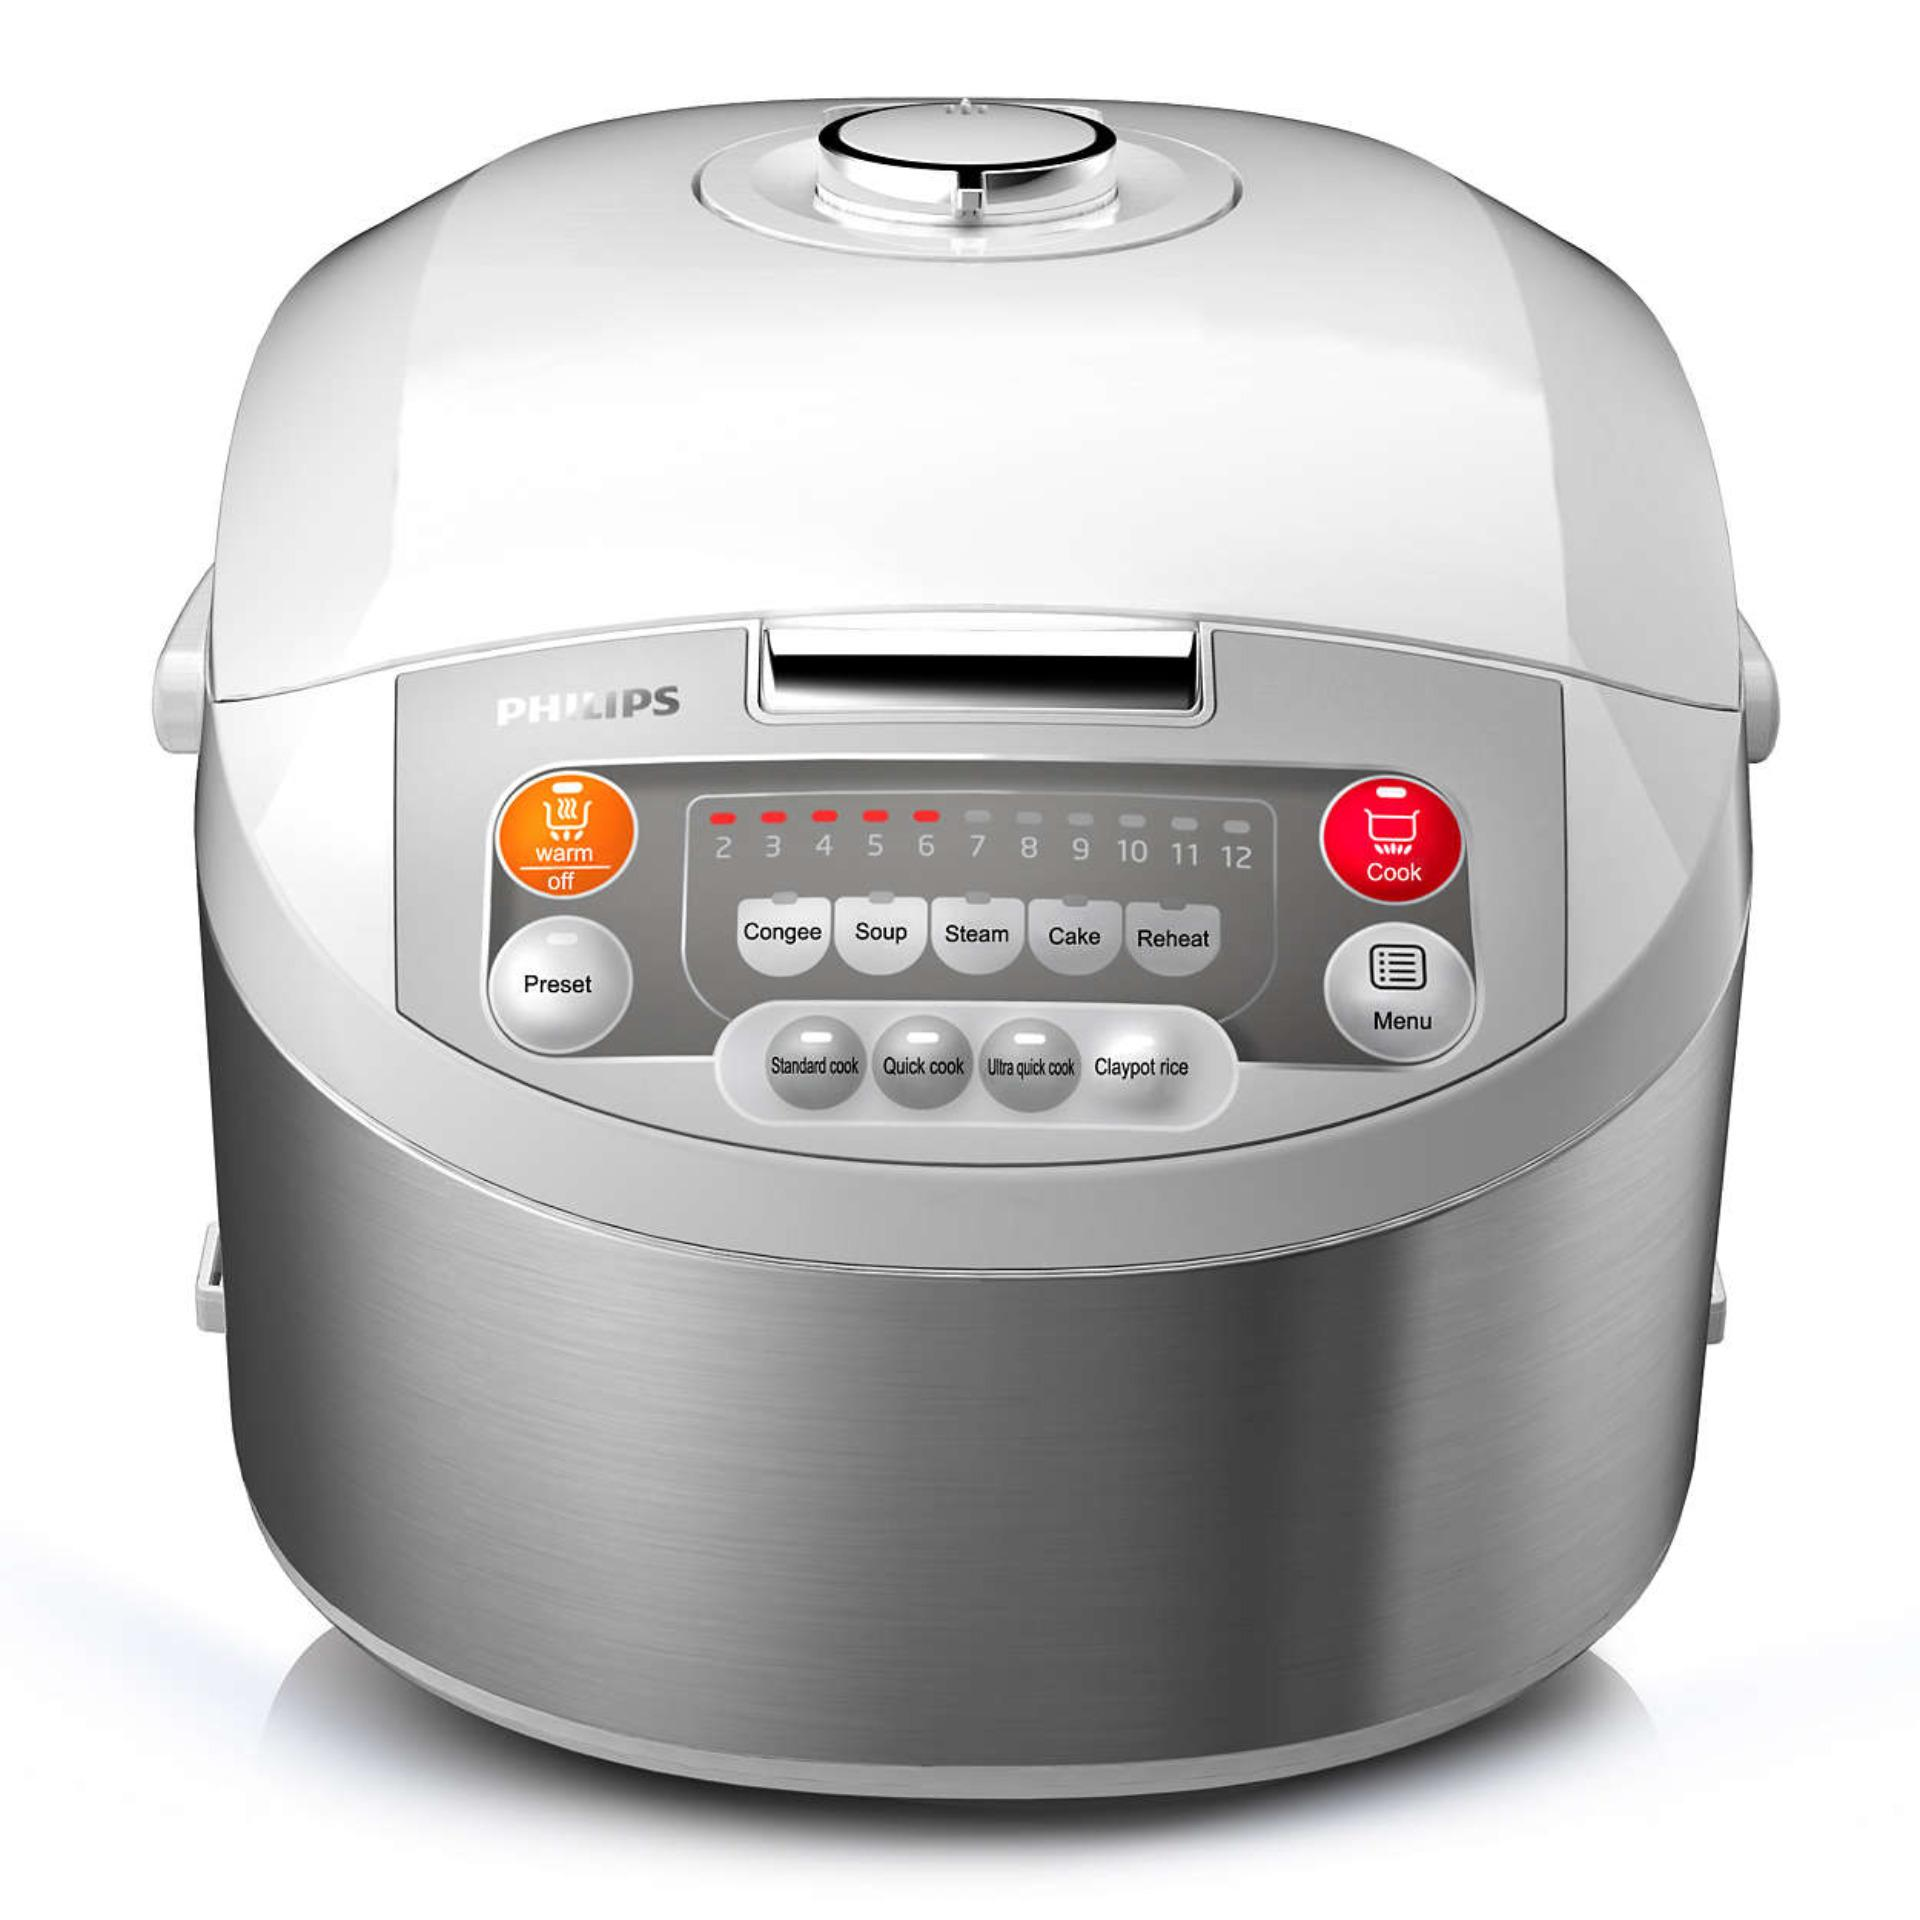 Tips Beli Philips Fuzzy Logic Rice Cooker Hd3038 Yang Bagus